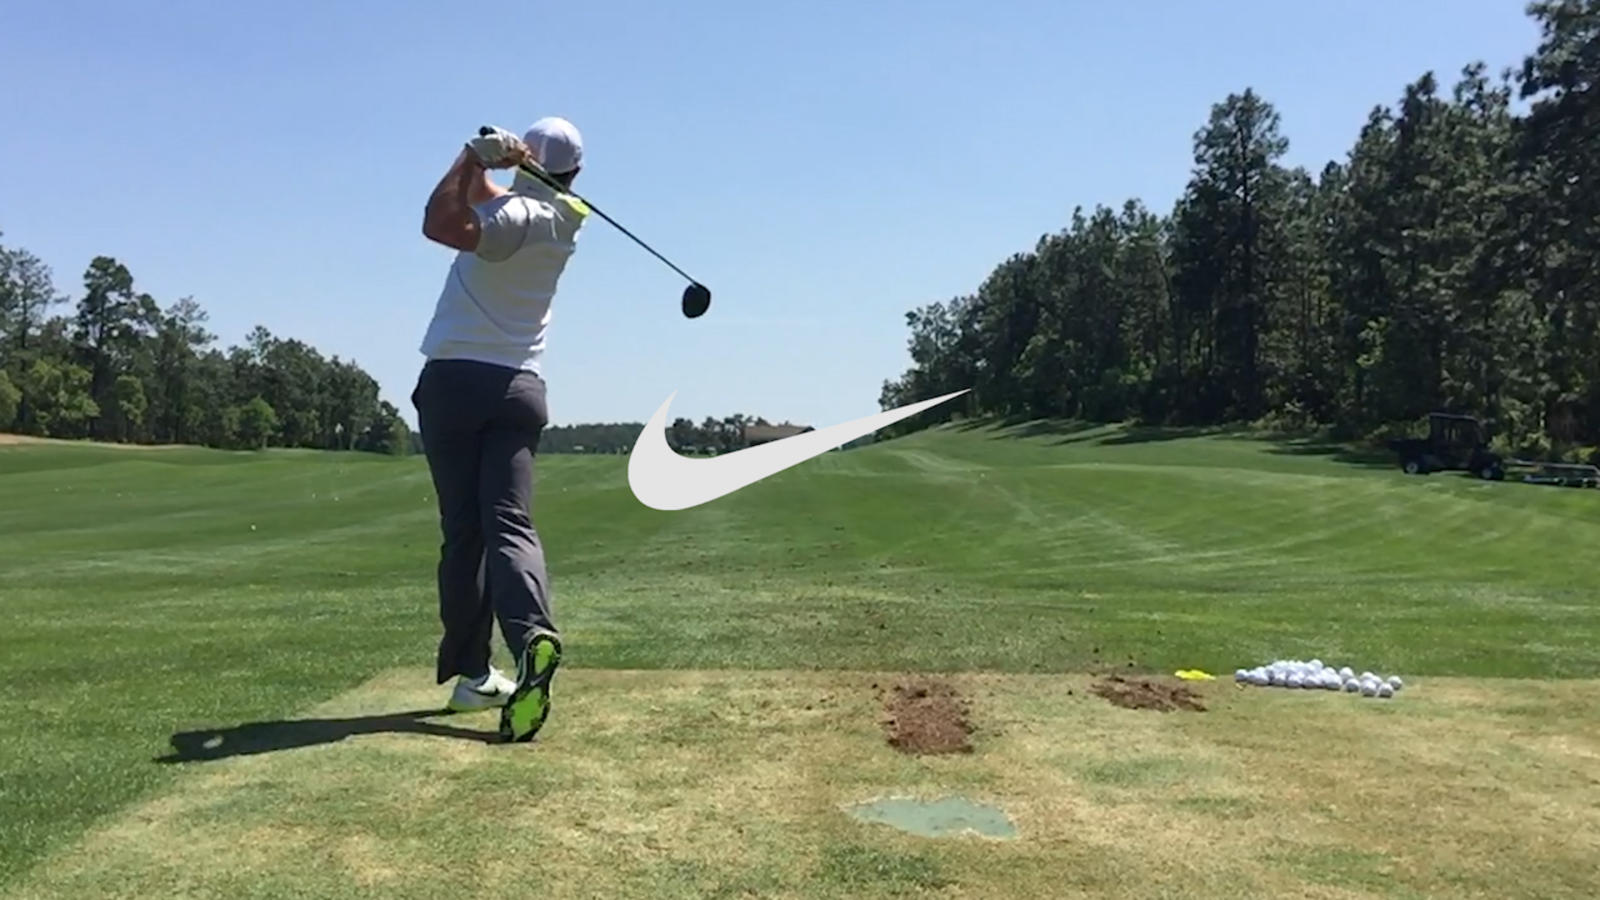 Nike and Rory McIlroy Collaborate to Create New Nike Equipment - Nike News